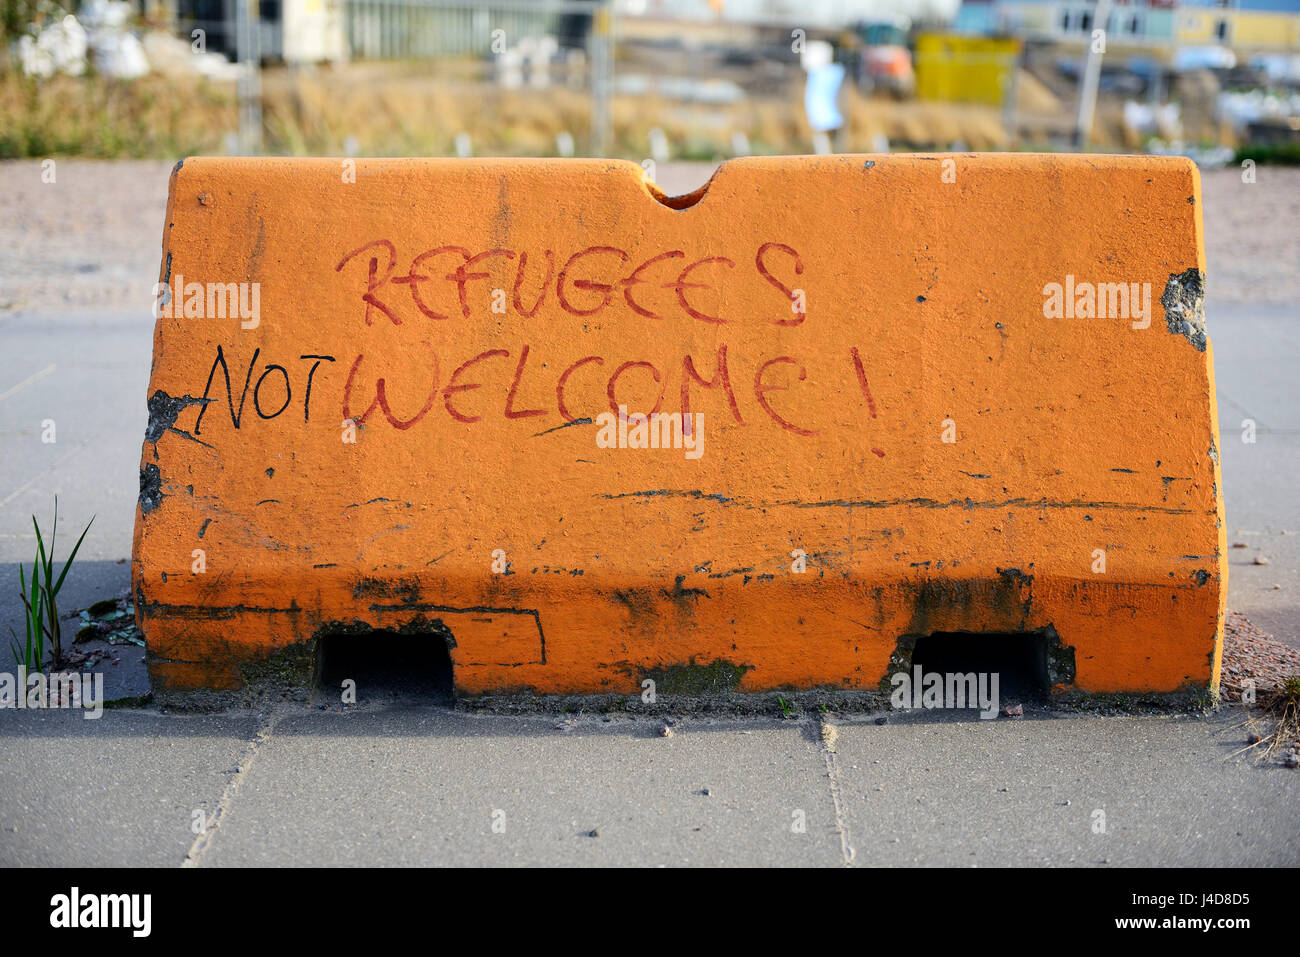 Approval and protest to the refugee policy in Hamburg, Germany, Europe, Zustimmung und Protest zur Fluechtlingspolitik - Stock Image